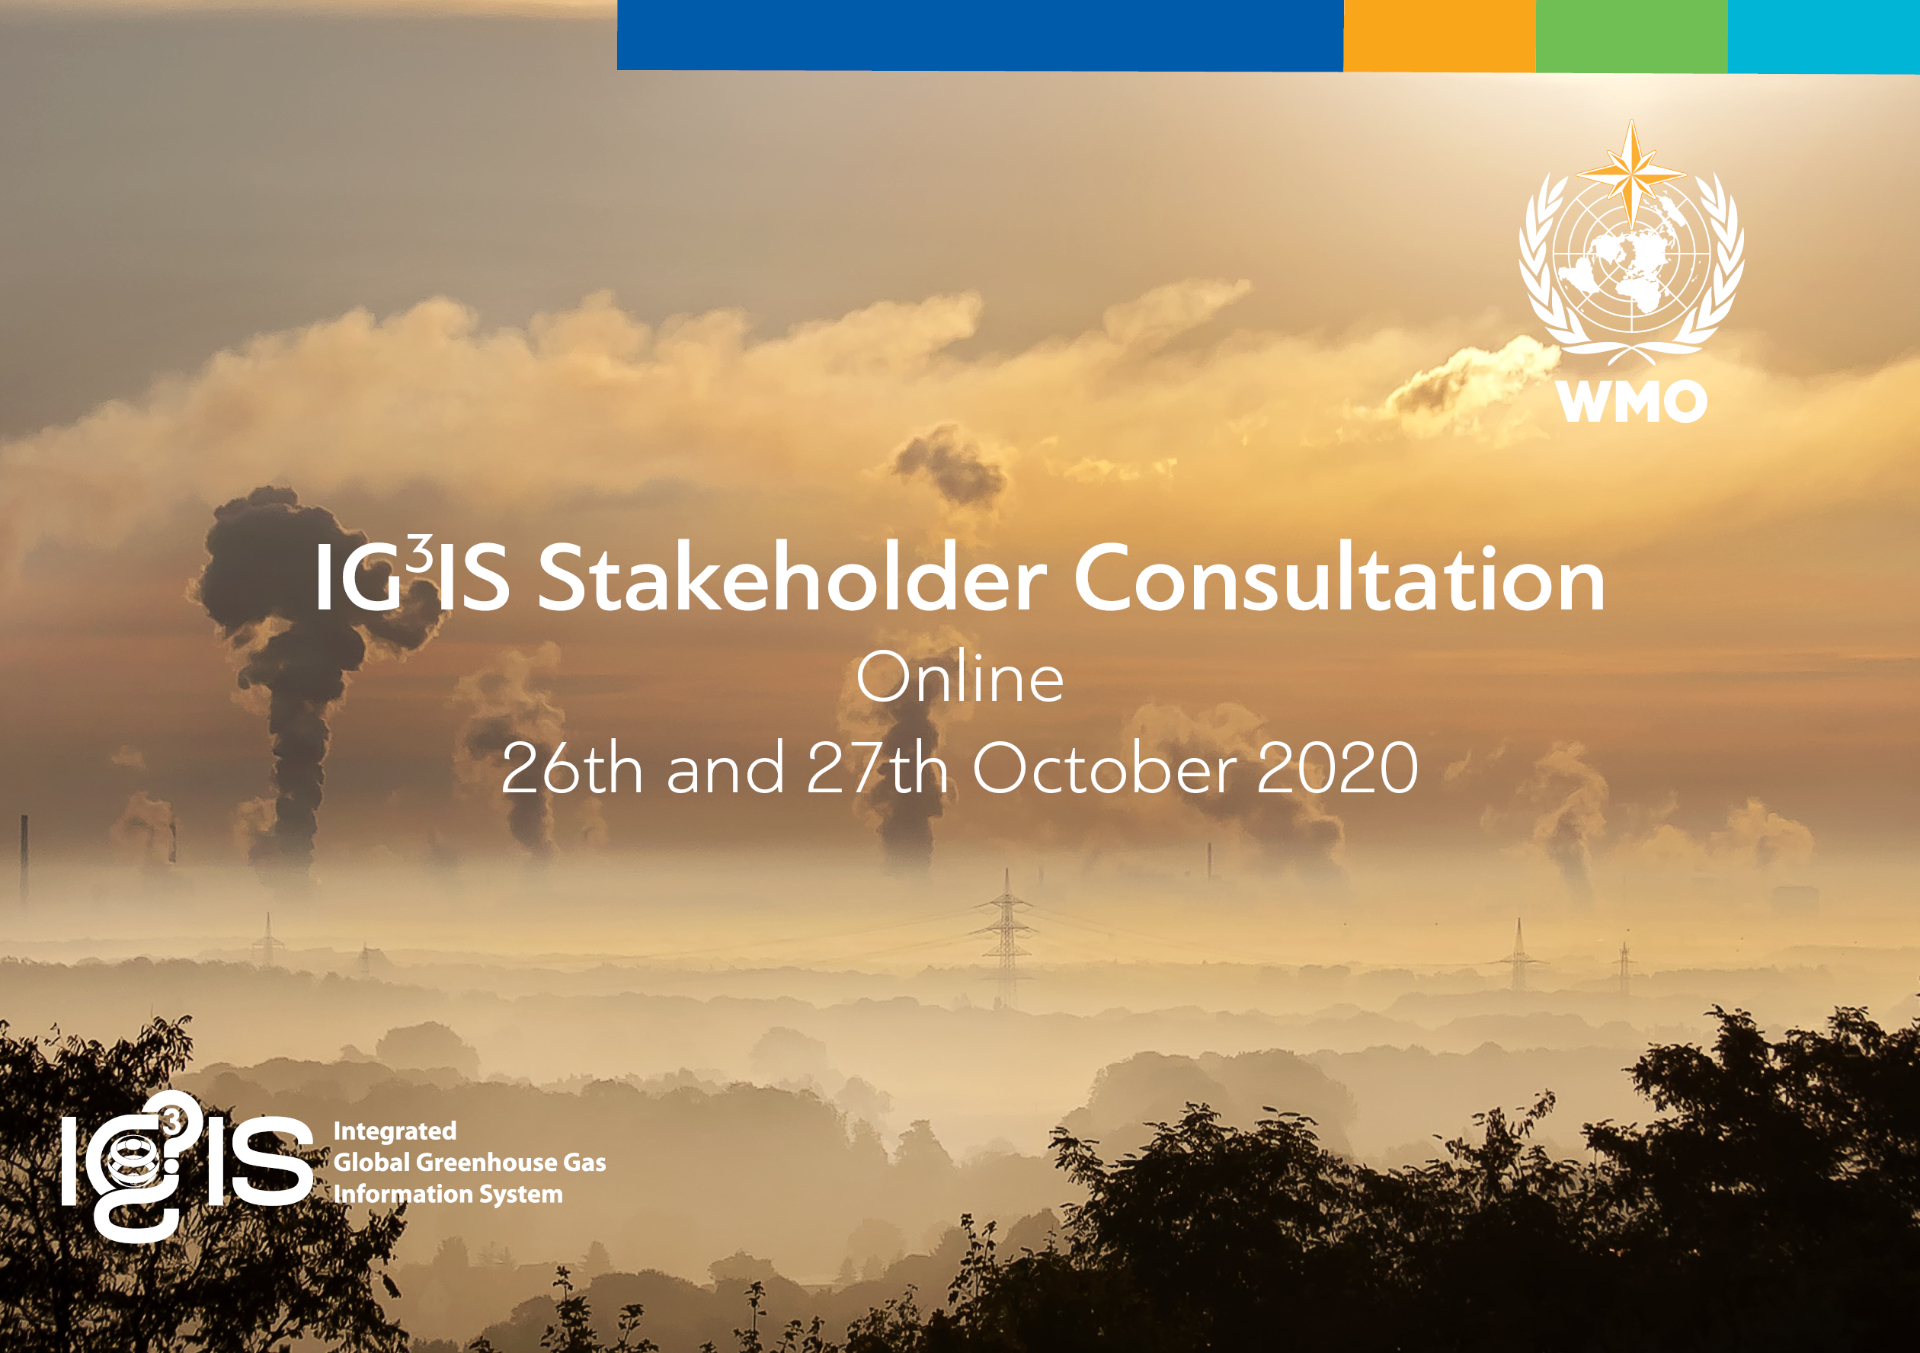 IG3IS stakeholder consultation flyer